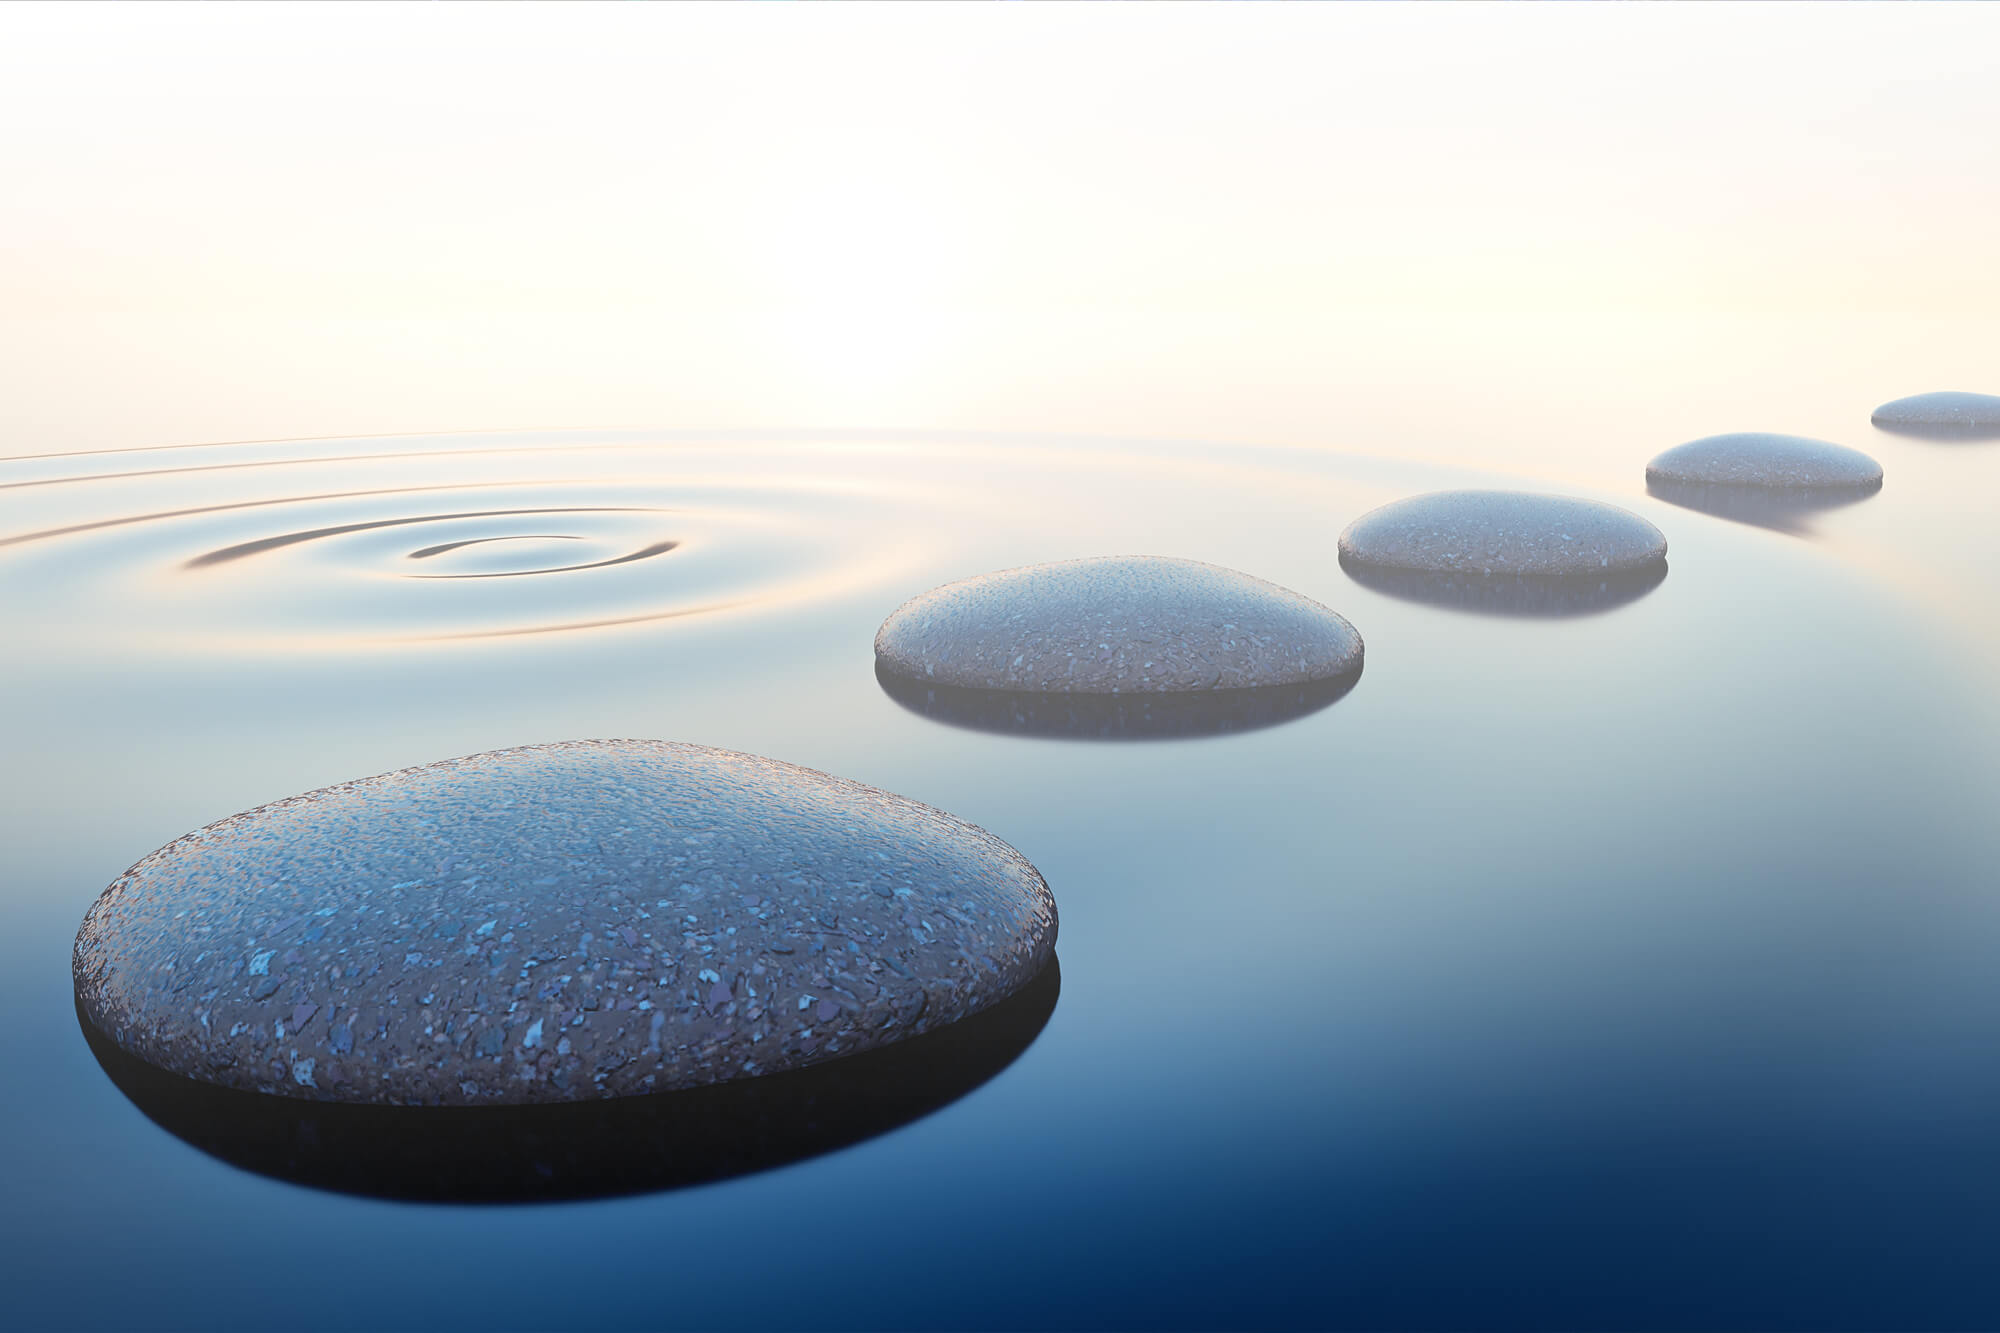 Photograph of walking stones in a pool of water.